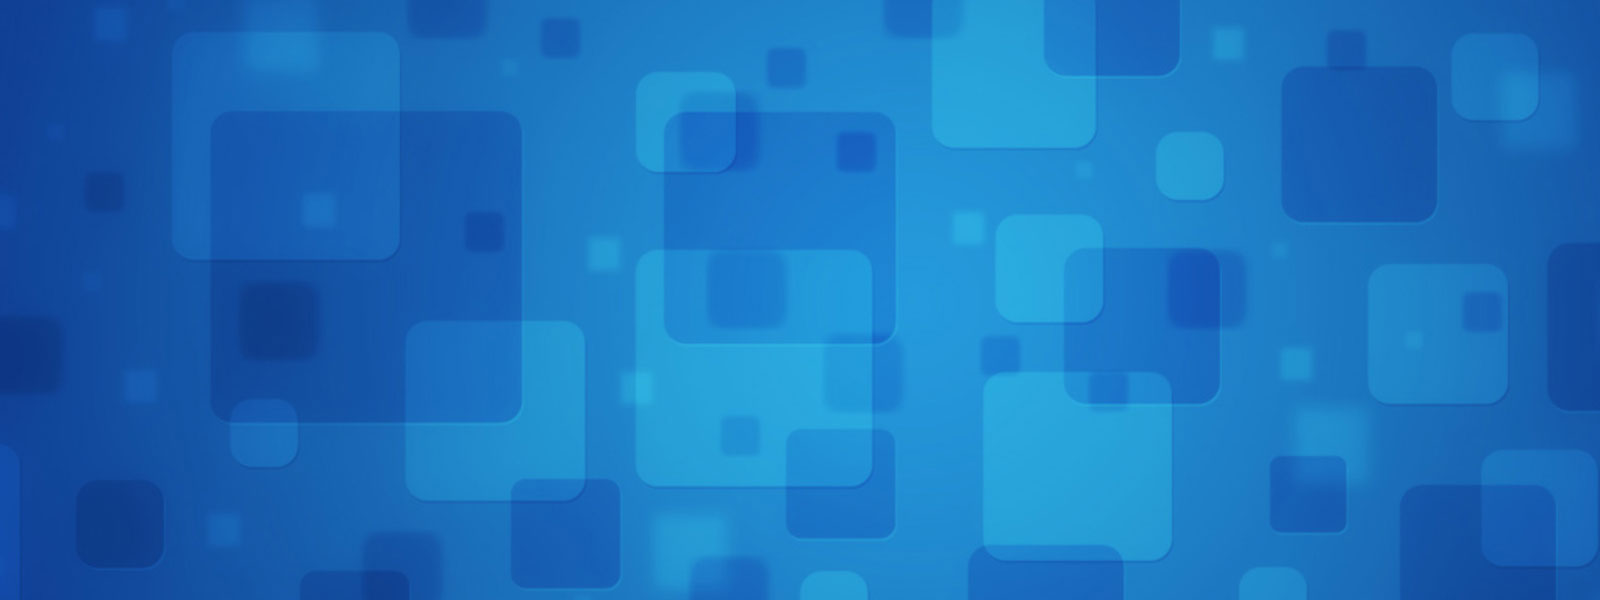 supply_dynamics_background_blue_box